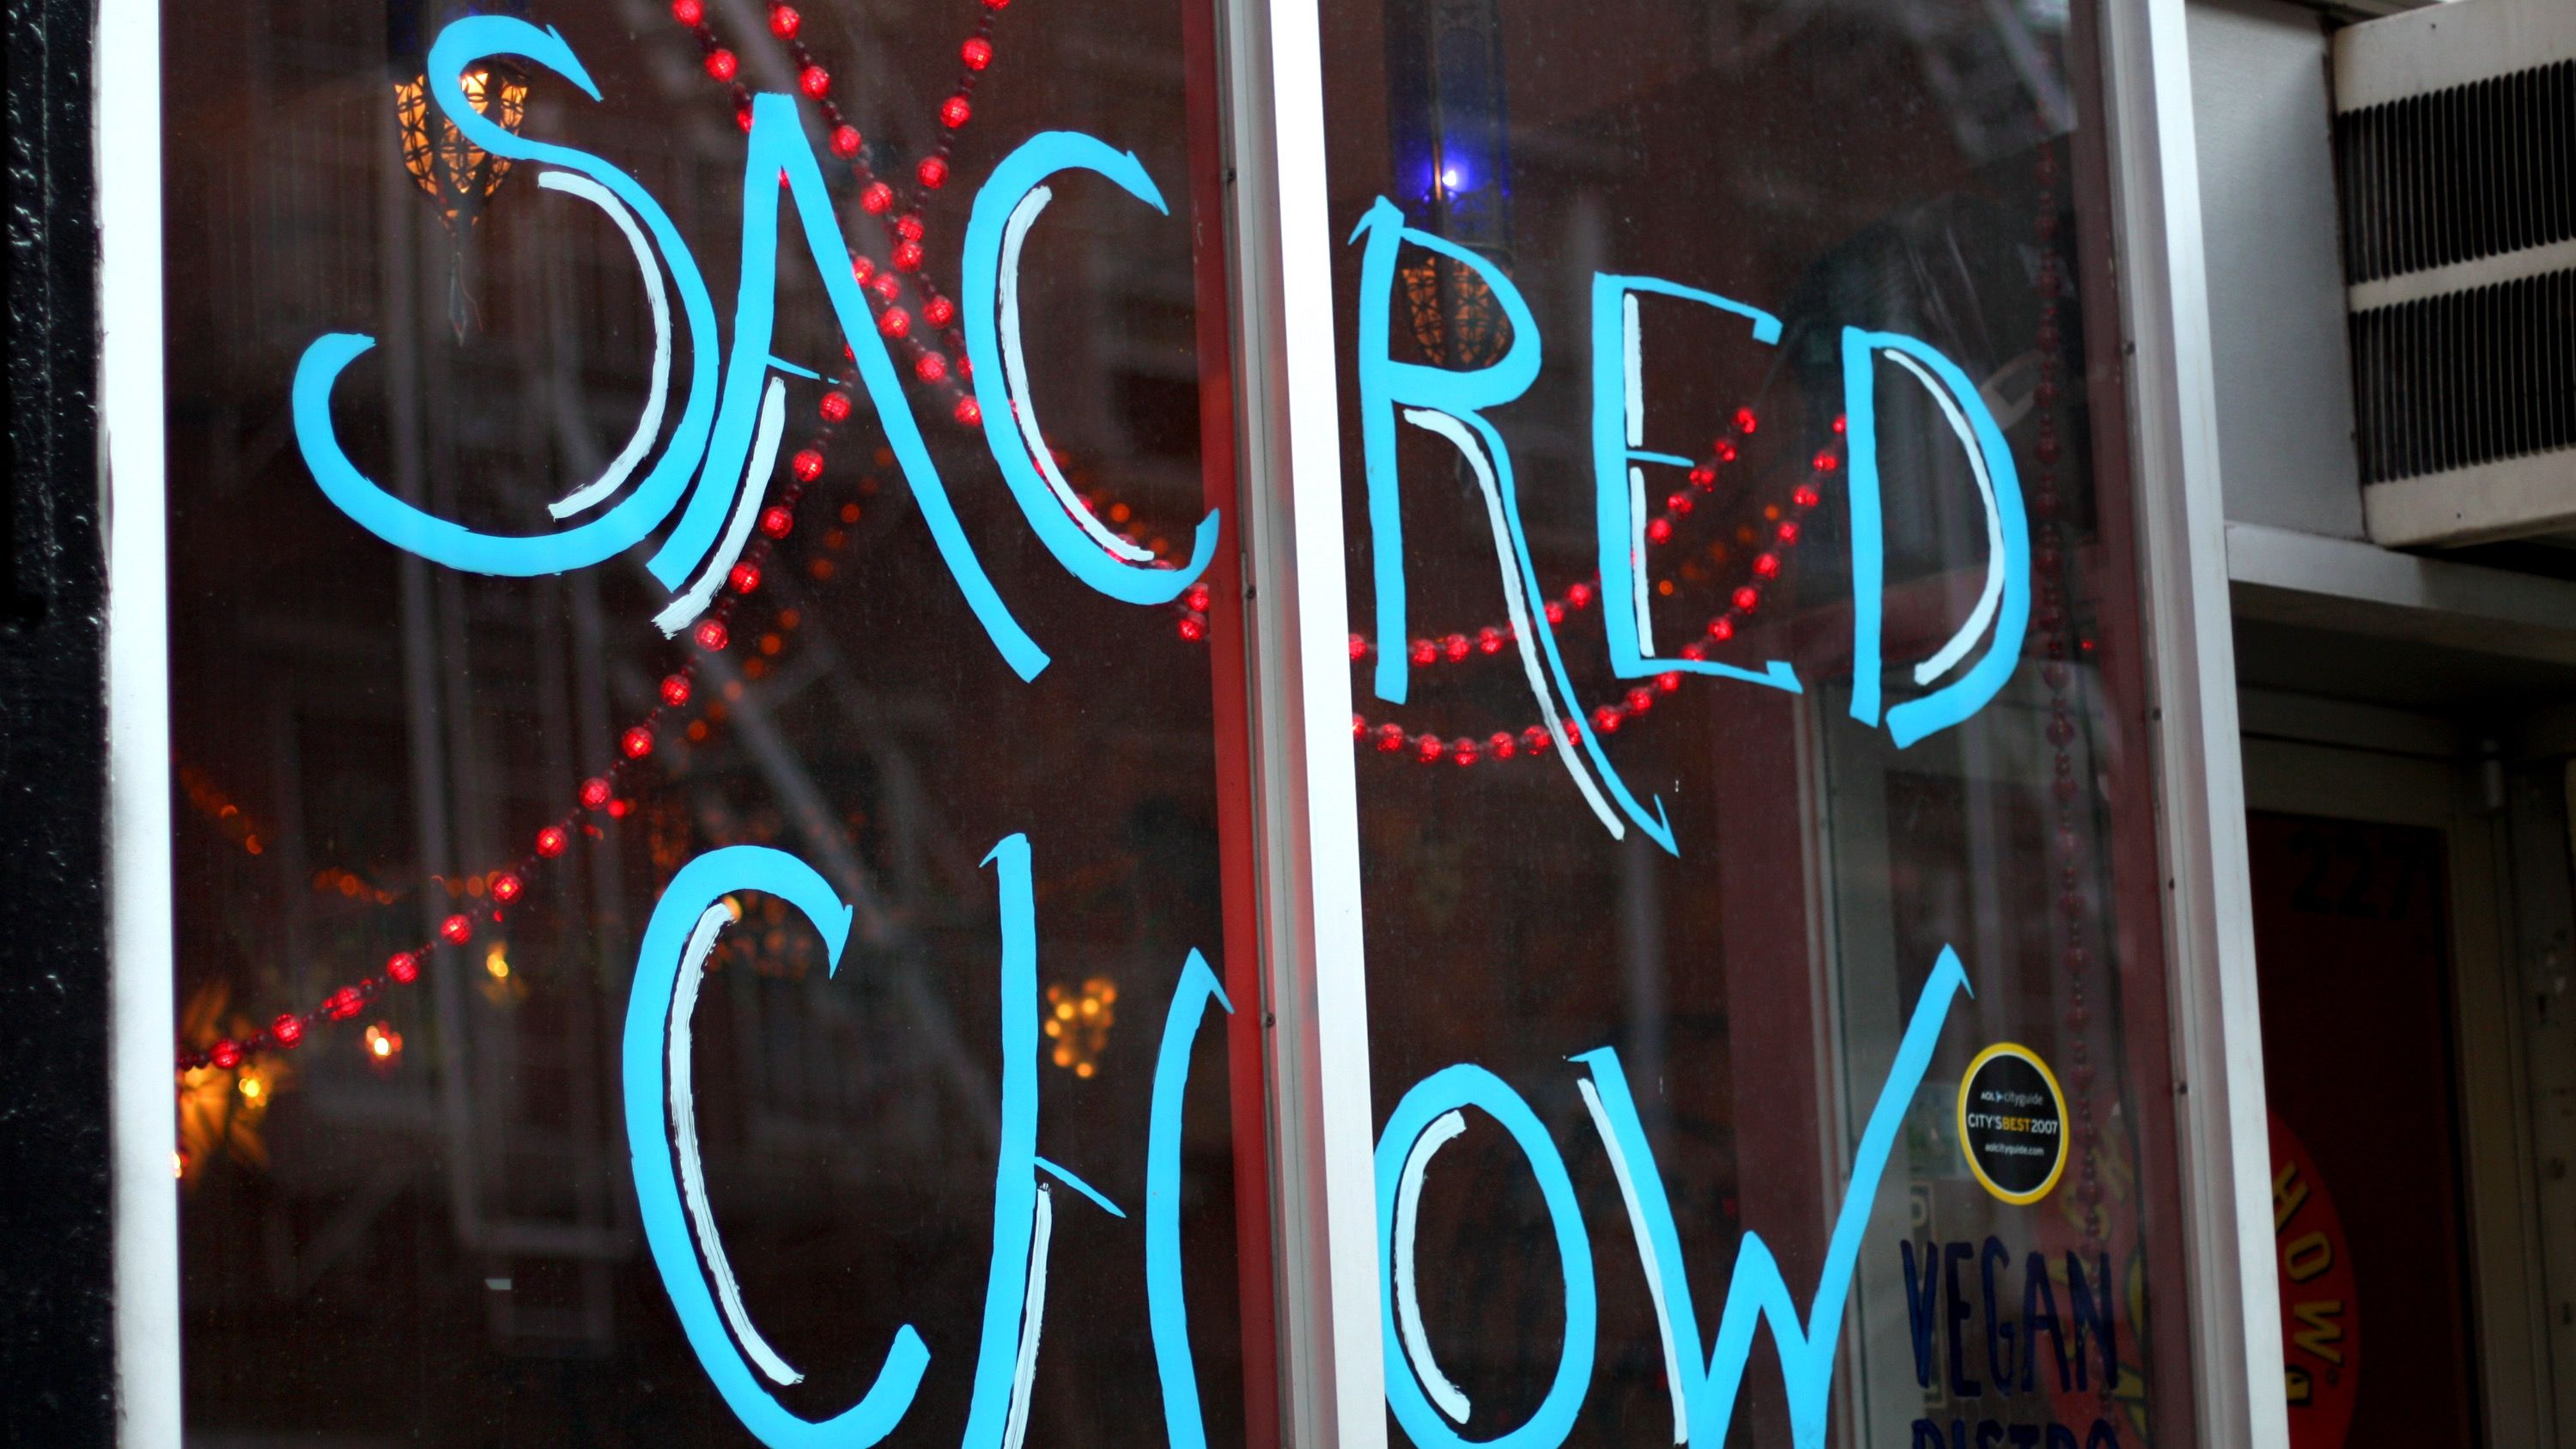 Controversial rabbi makes vegan restaurants kosher the forward the name of the vegan restaurant sacred chow is hand painted on its glass storefront biocorpaavc